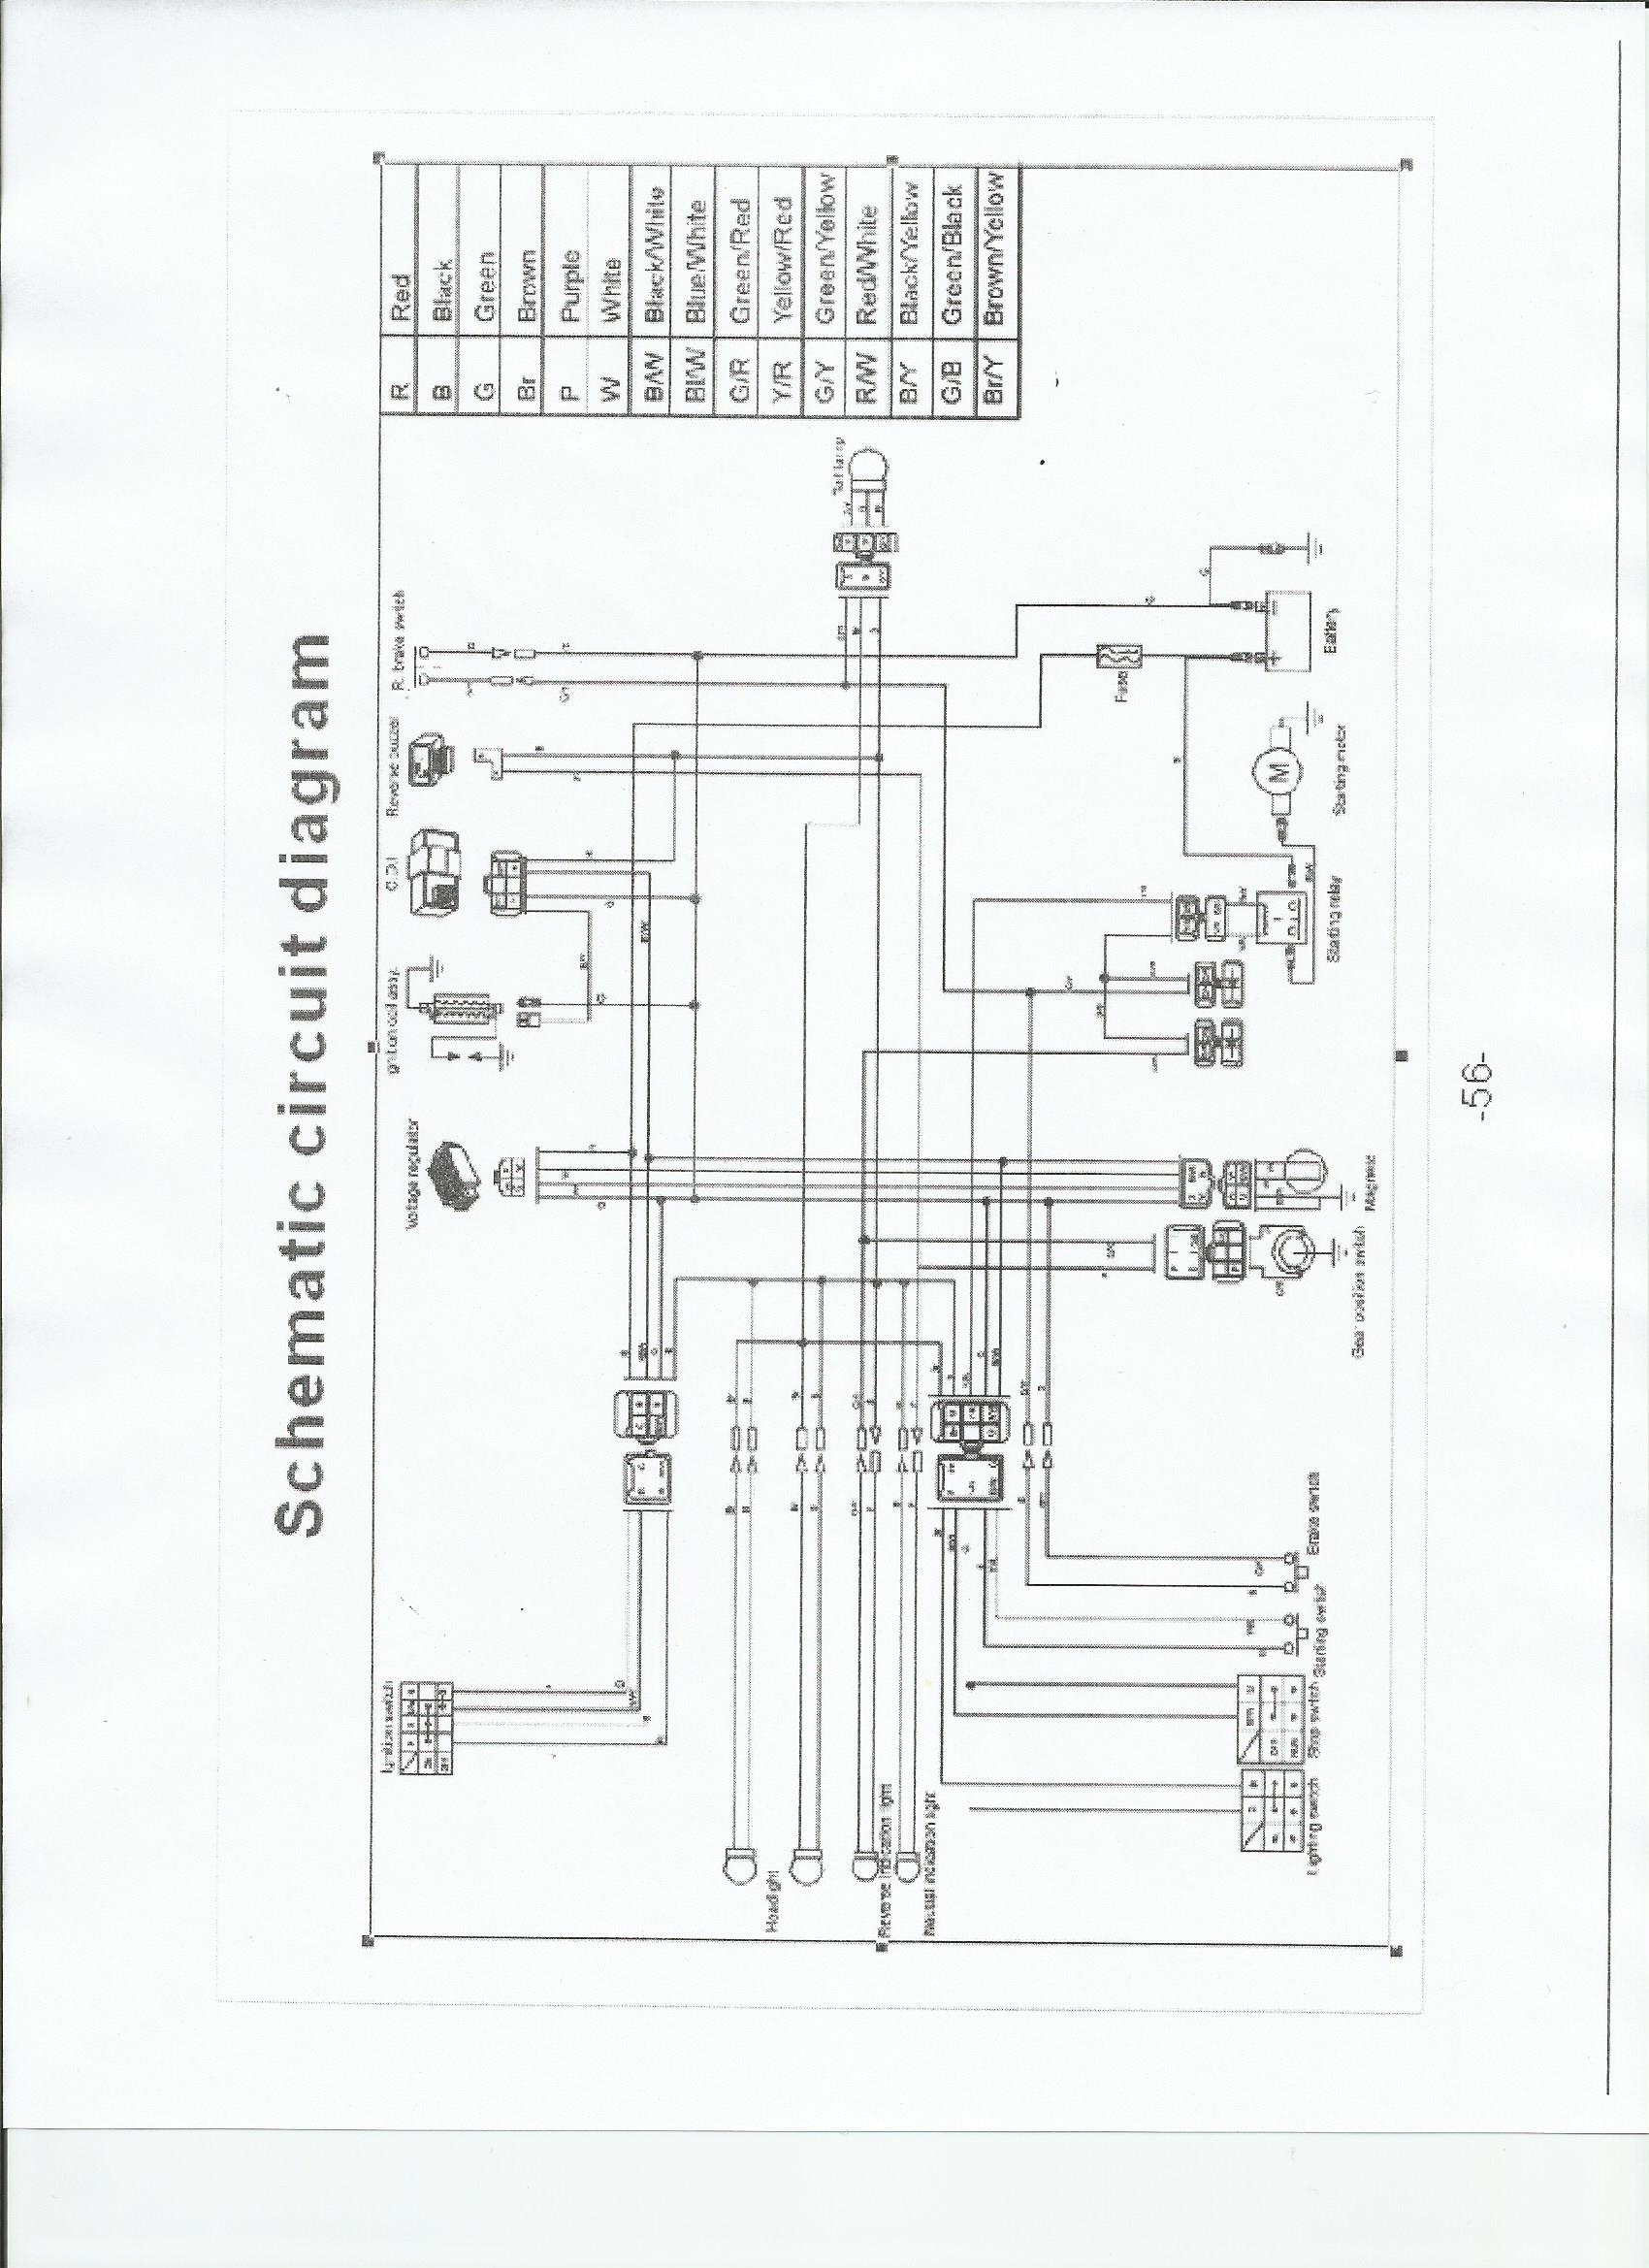 medium resolution of taotao mini and youth atv wiring schematic familygokarts support wiring diagram for a quad tao tao